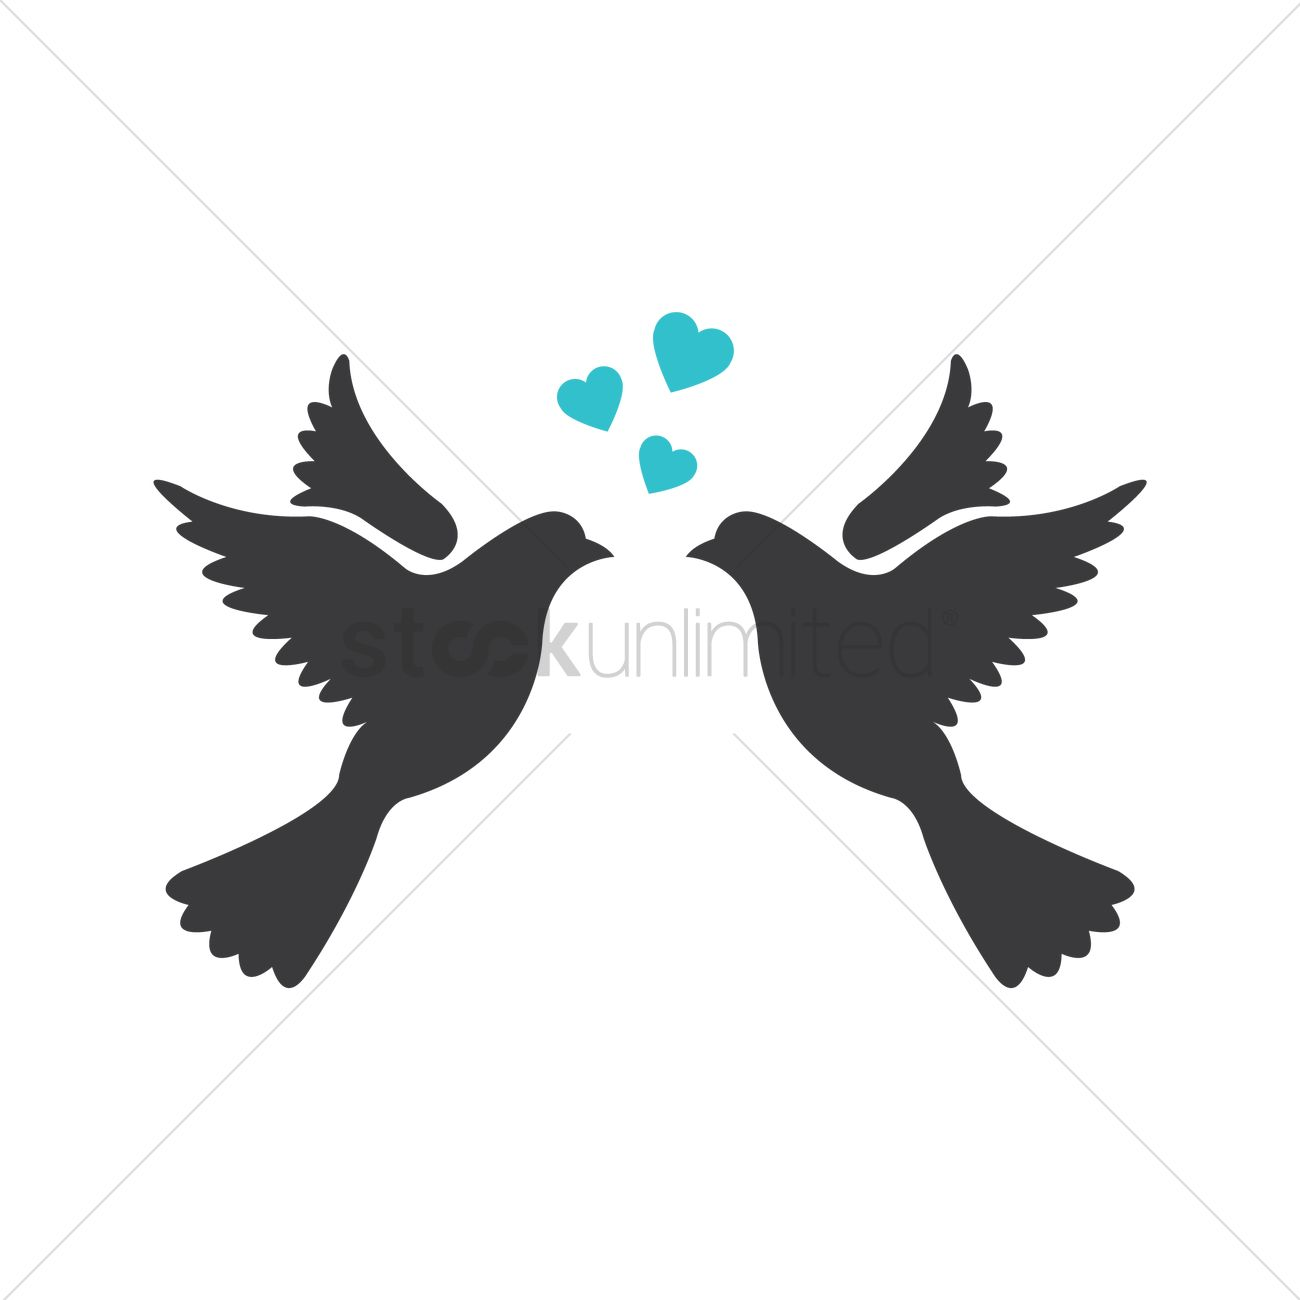 love birds vector image 1326857 stockunlimited love birds clip art to color love bird clip art free